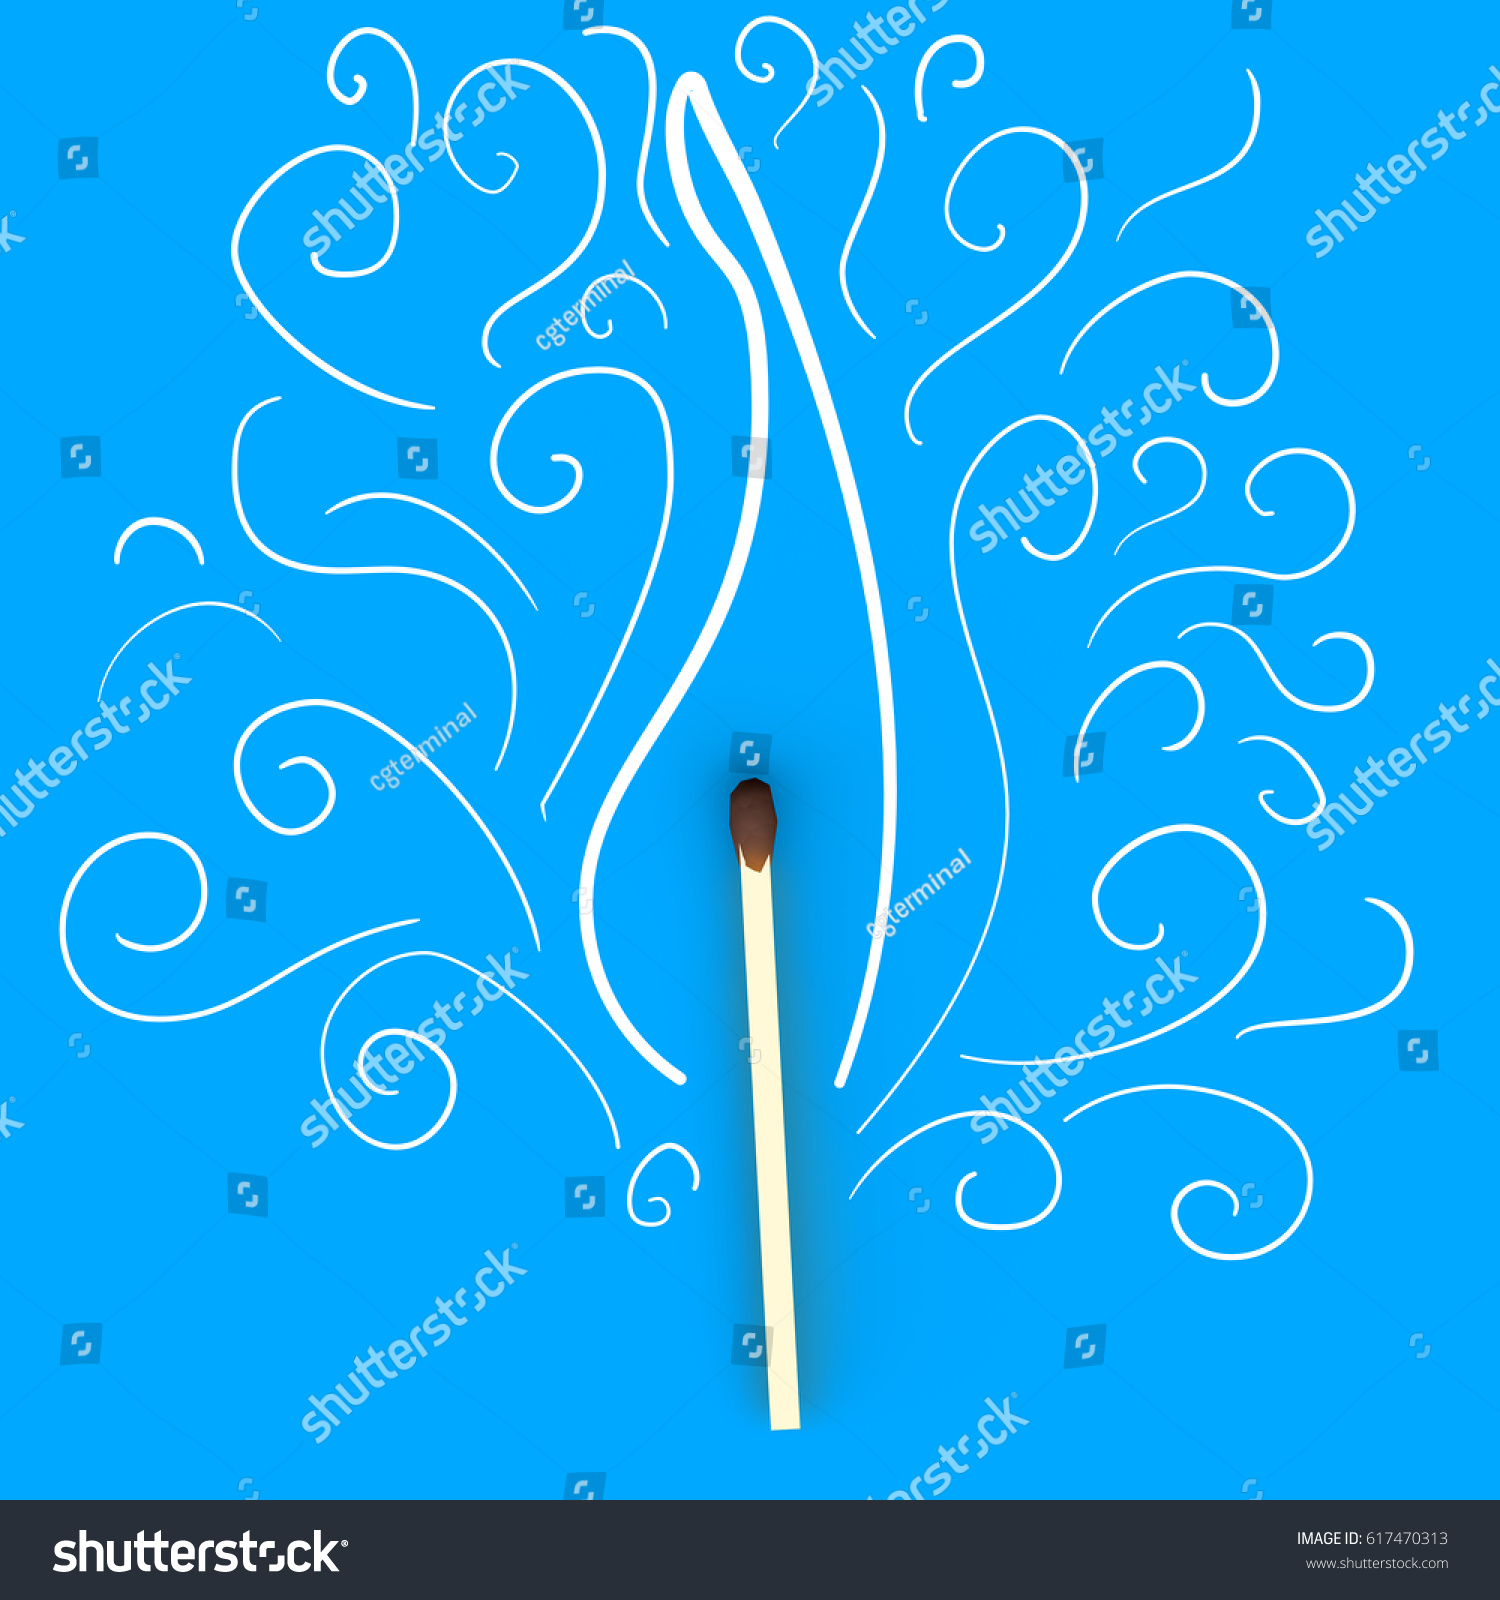 Wooden Match Hand Drawn Painted Doodle Stock Illustration